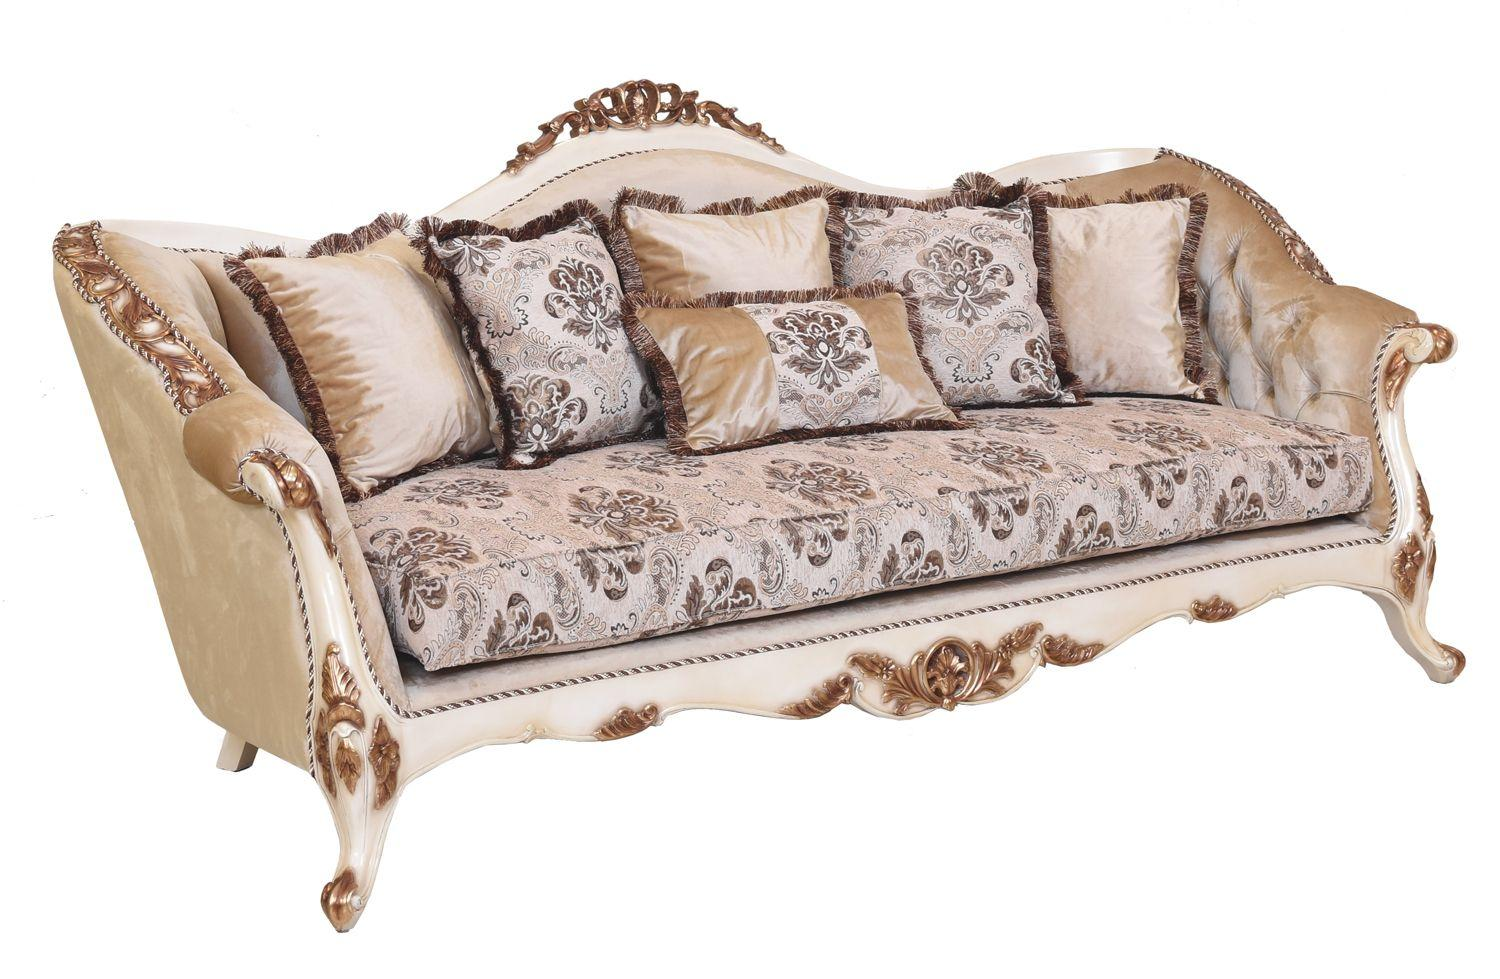 Classic  Traditional Beige  Gold  Antique Wood  Solid Hardwood and Fabric Sofa EUROPEAN FURNITURE 37008-S